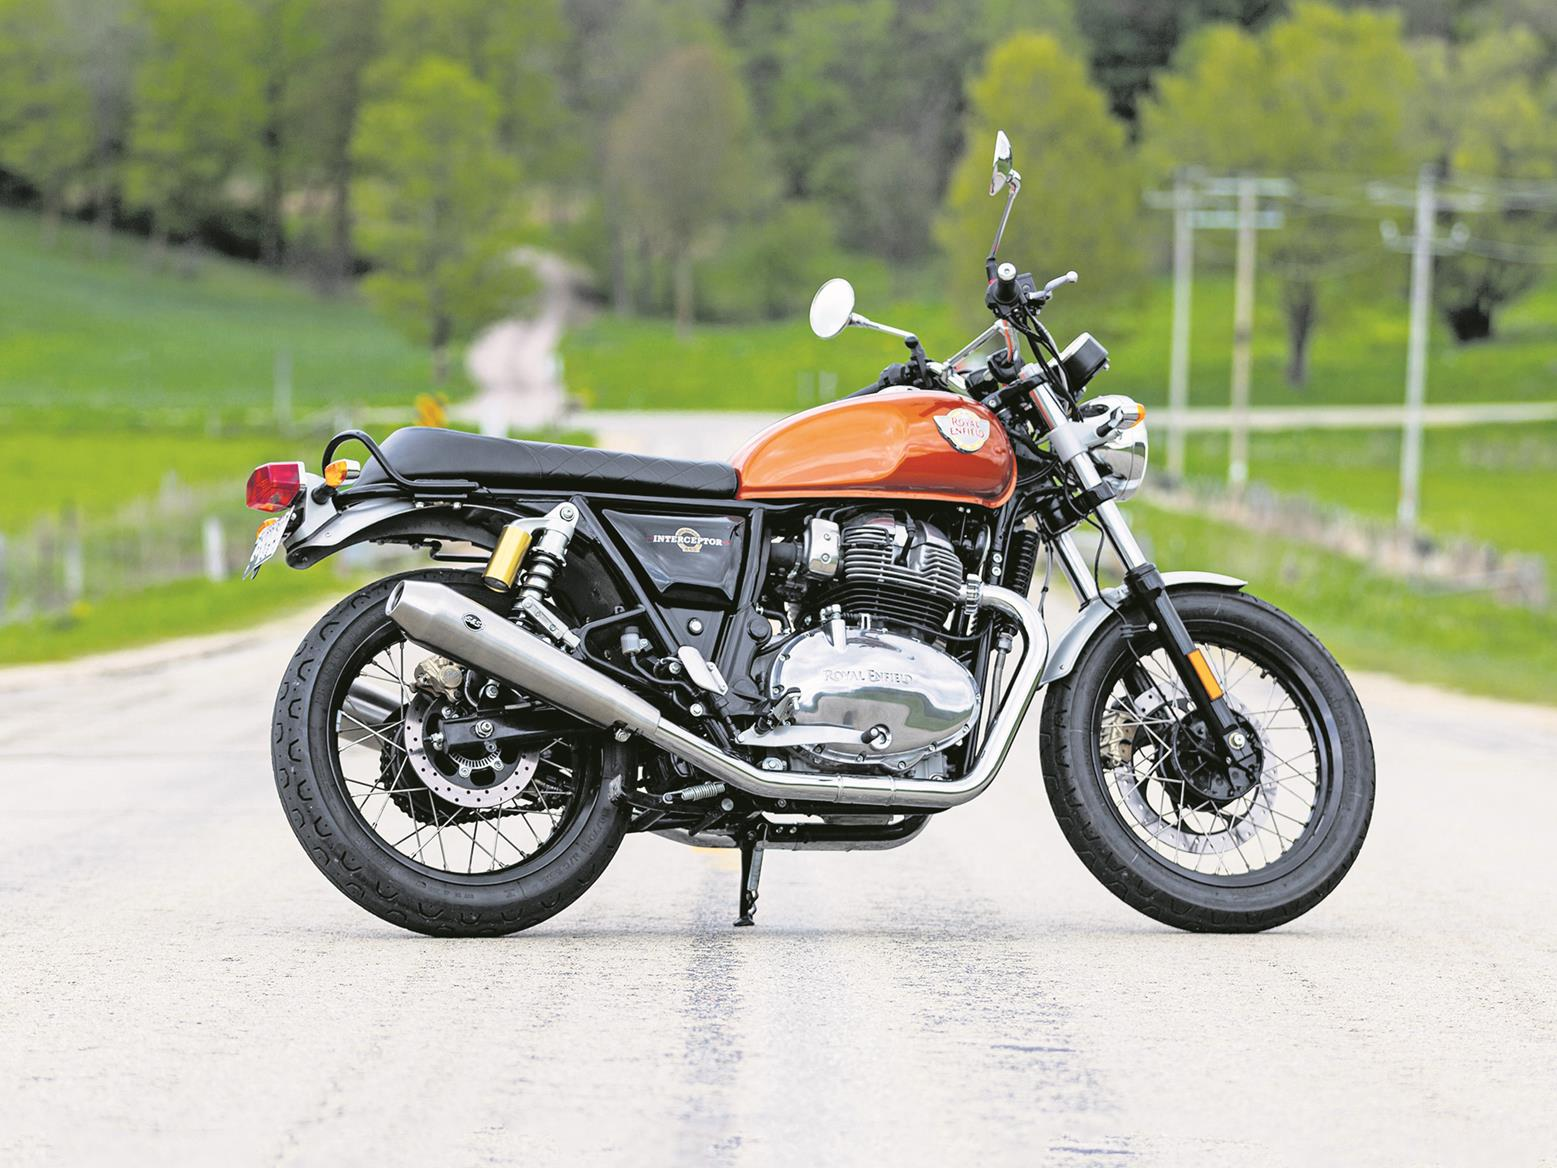 Heat up your Royal Enfield 650 with S&S kit